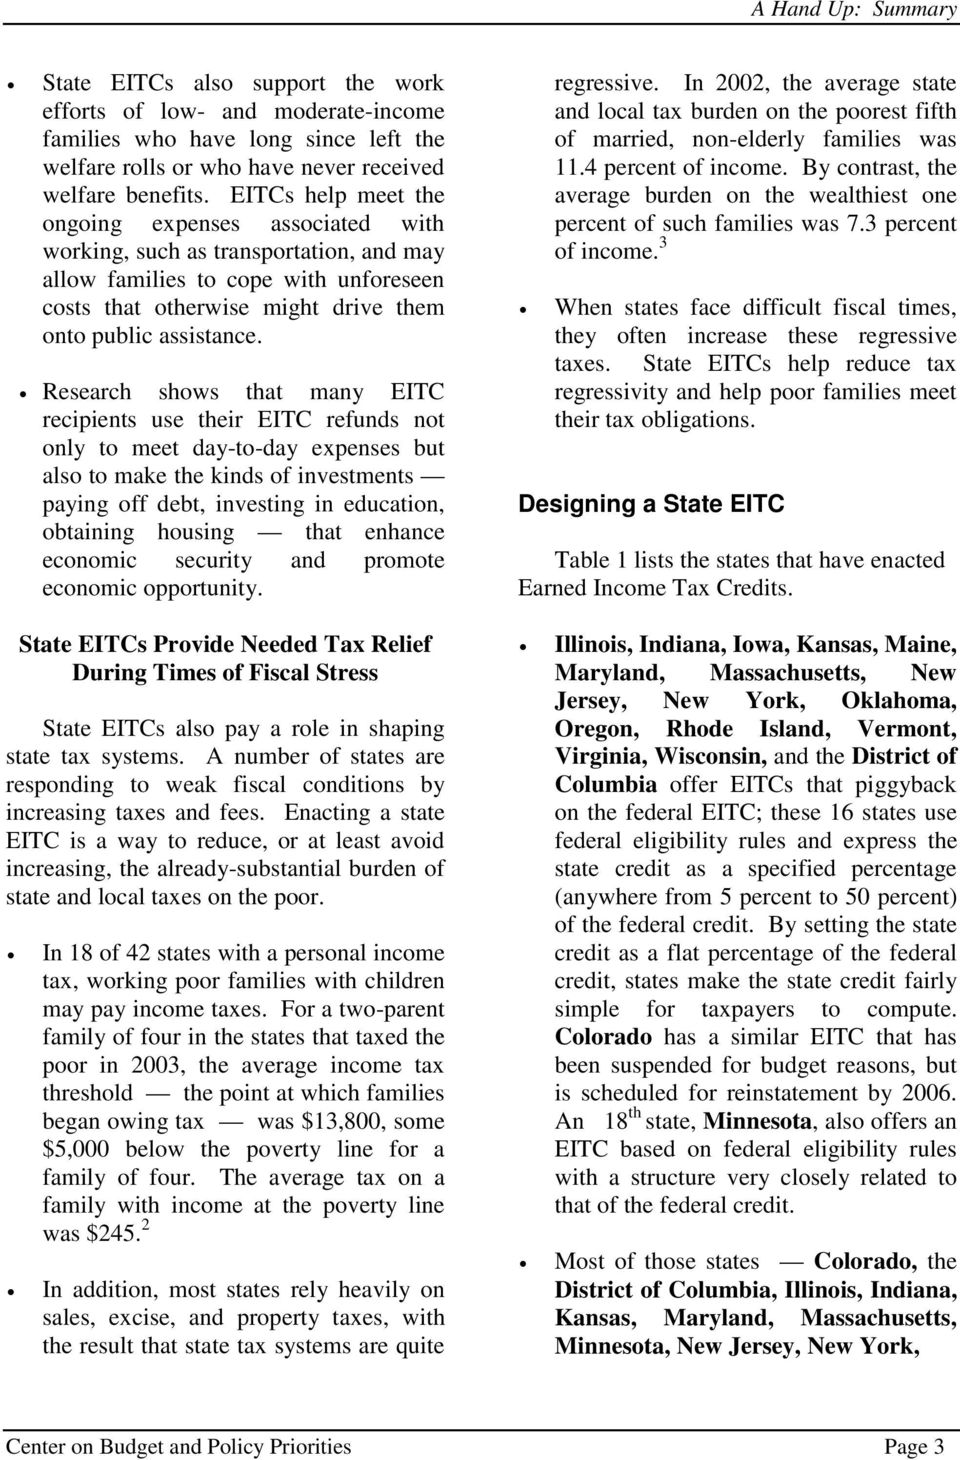 Research shows that many EITC recipients use their EITC refunds not only to meet day-to-day expenses but also to make the kinds of investments paying off debt, investing in education, obtaining